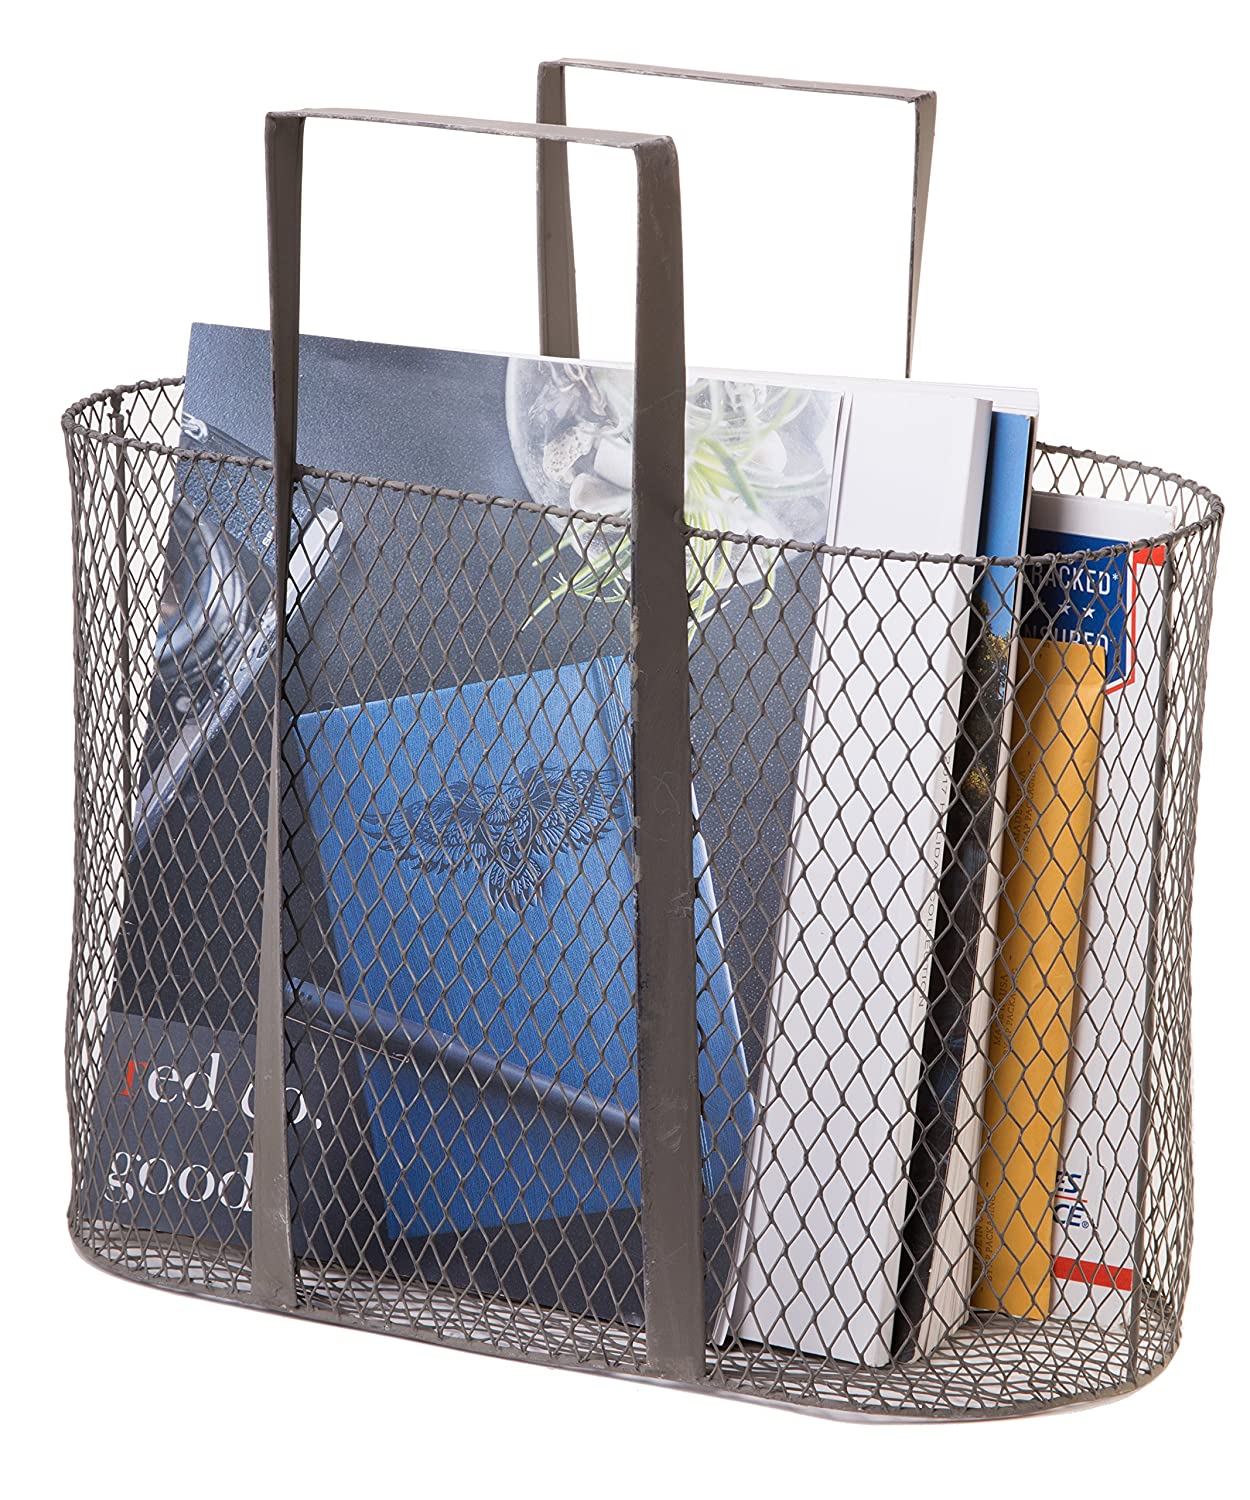 Red Co. Farmhouse Chic Wire Mesh Carry All Basket, Metal Decorative Storage, Large Size, 14-inch 83474-ZZB